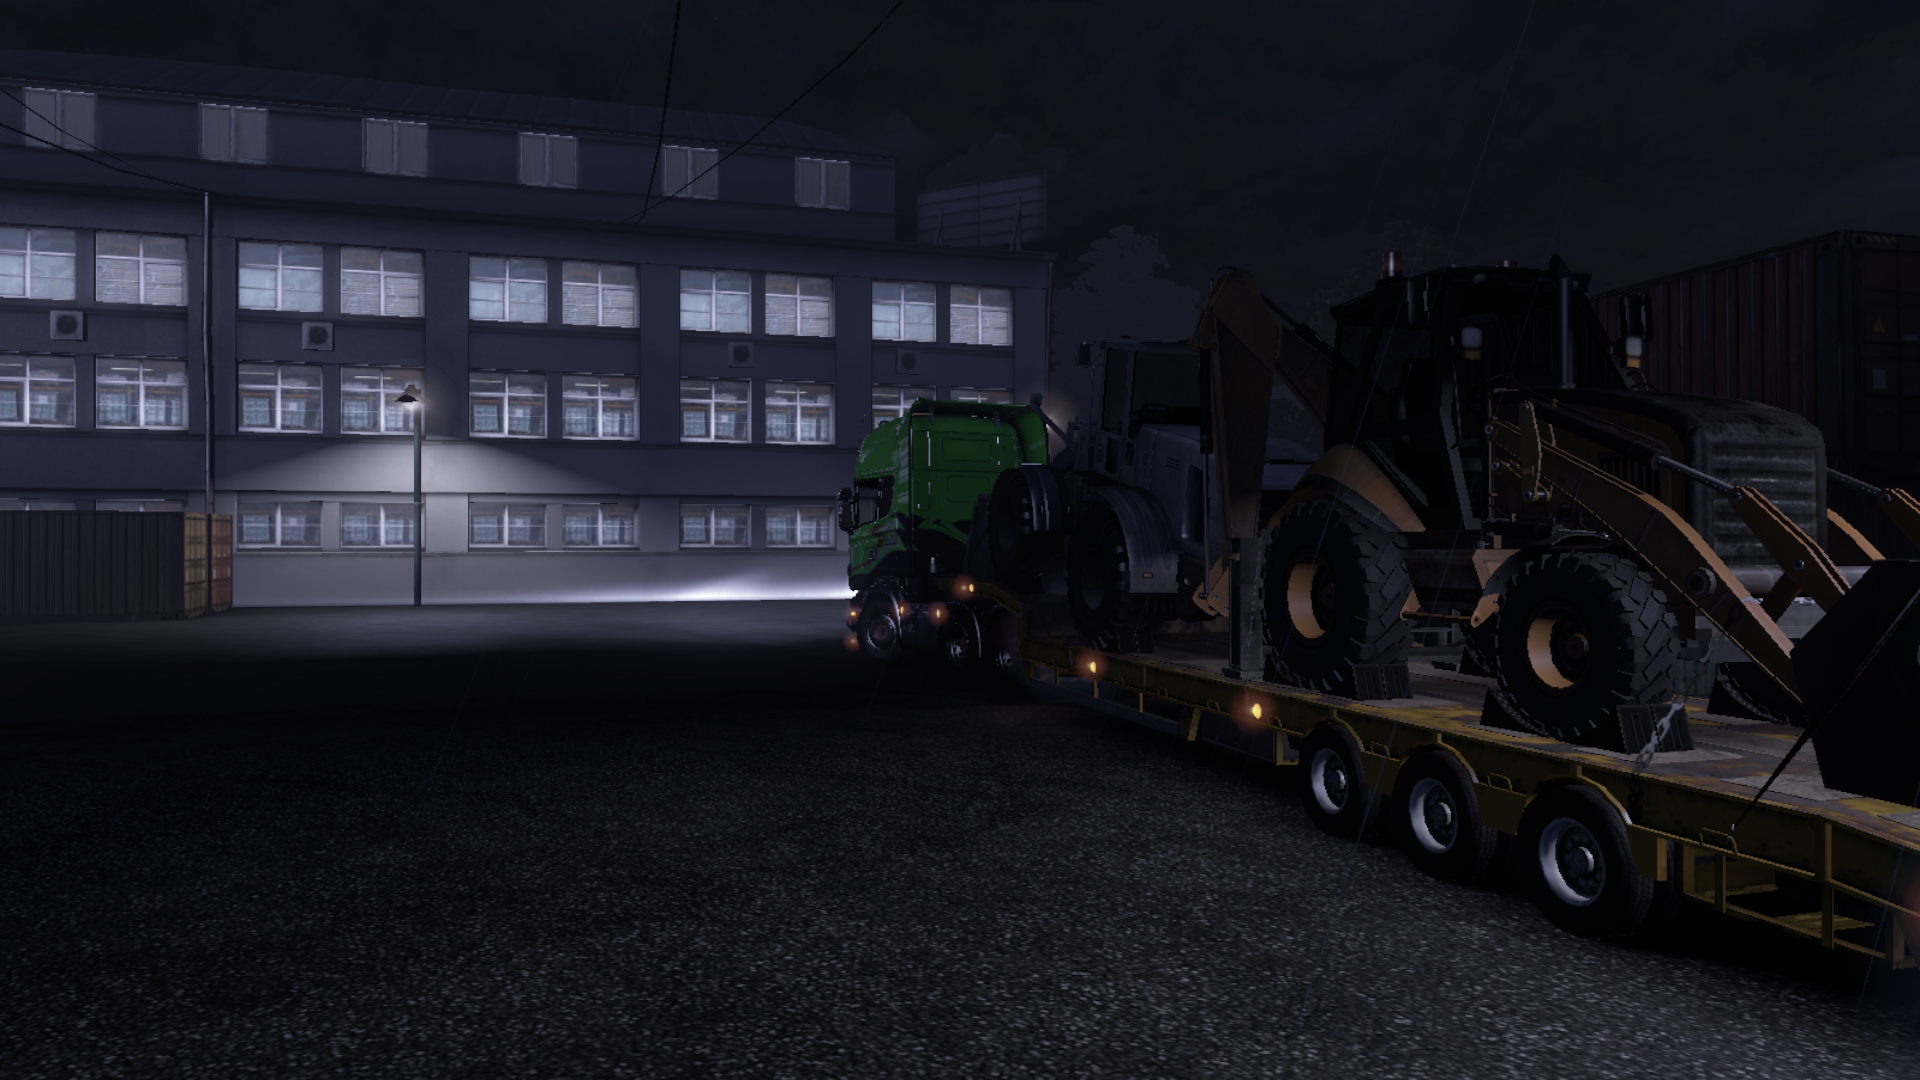 http://www.abload.de/img/ets2_00049shuwp.png